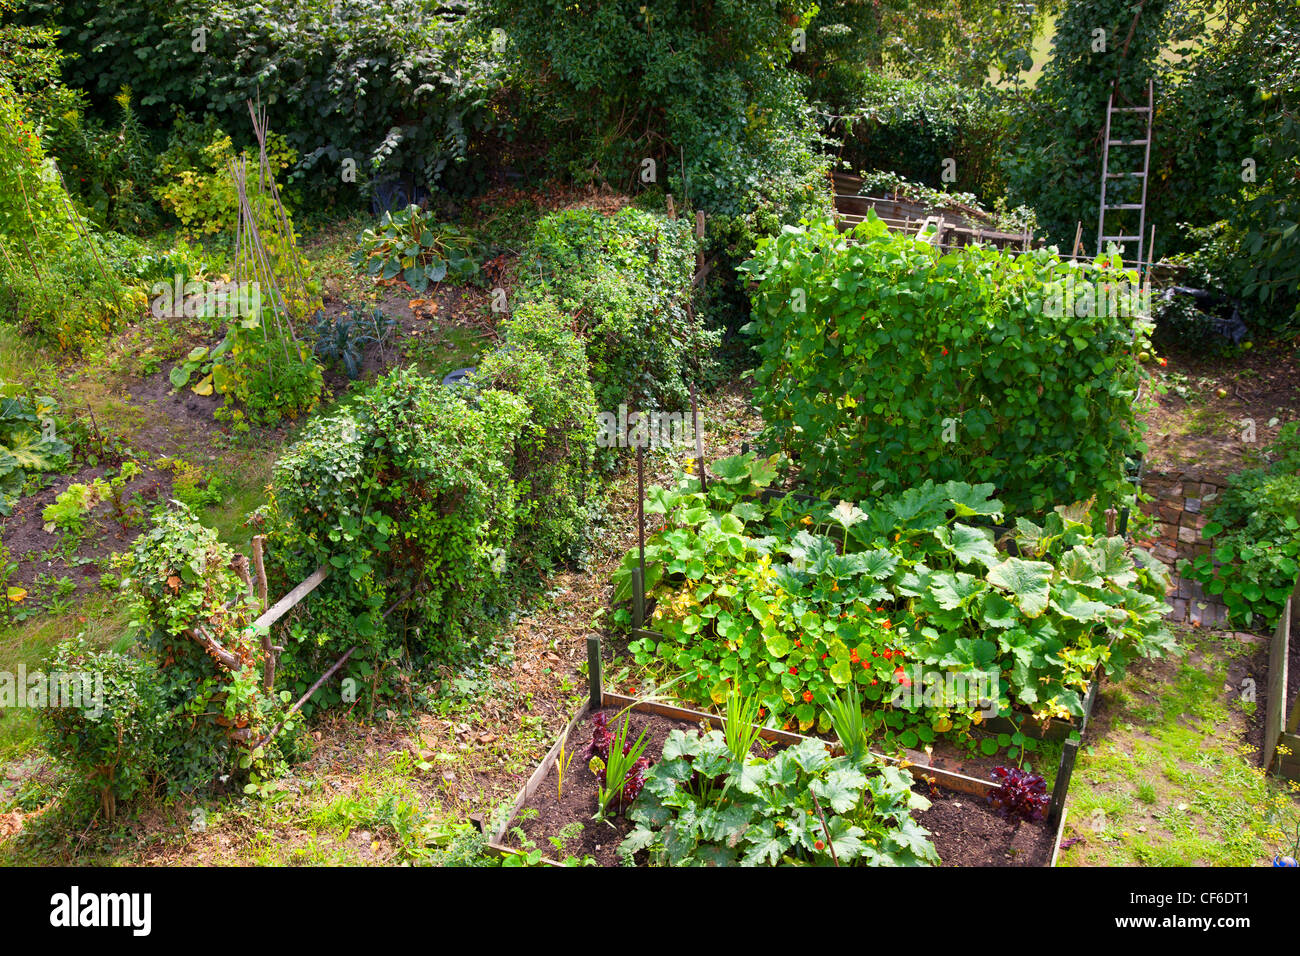 Vegetables growing in a thriving allotment in the historic market town of Shrewsbury. - Stock Image